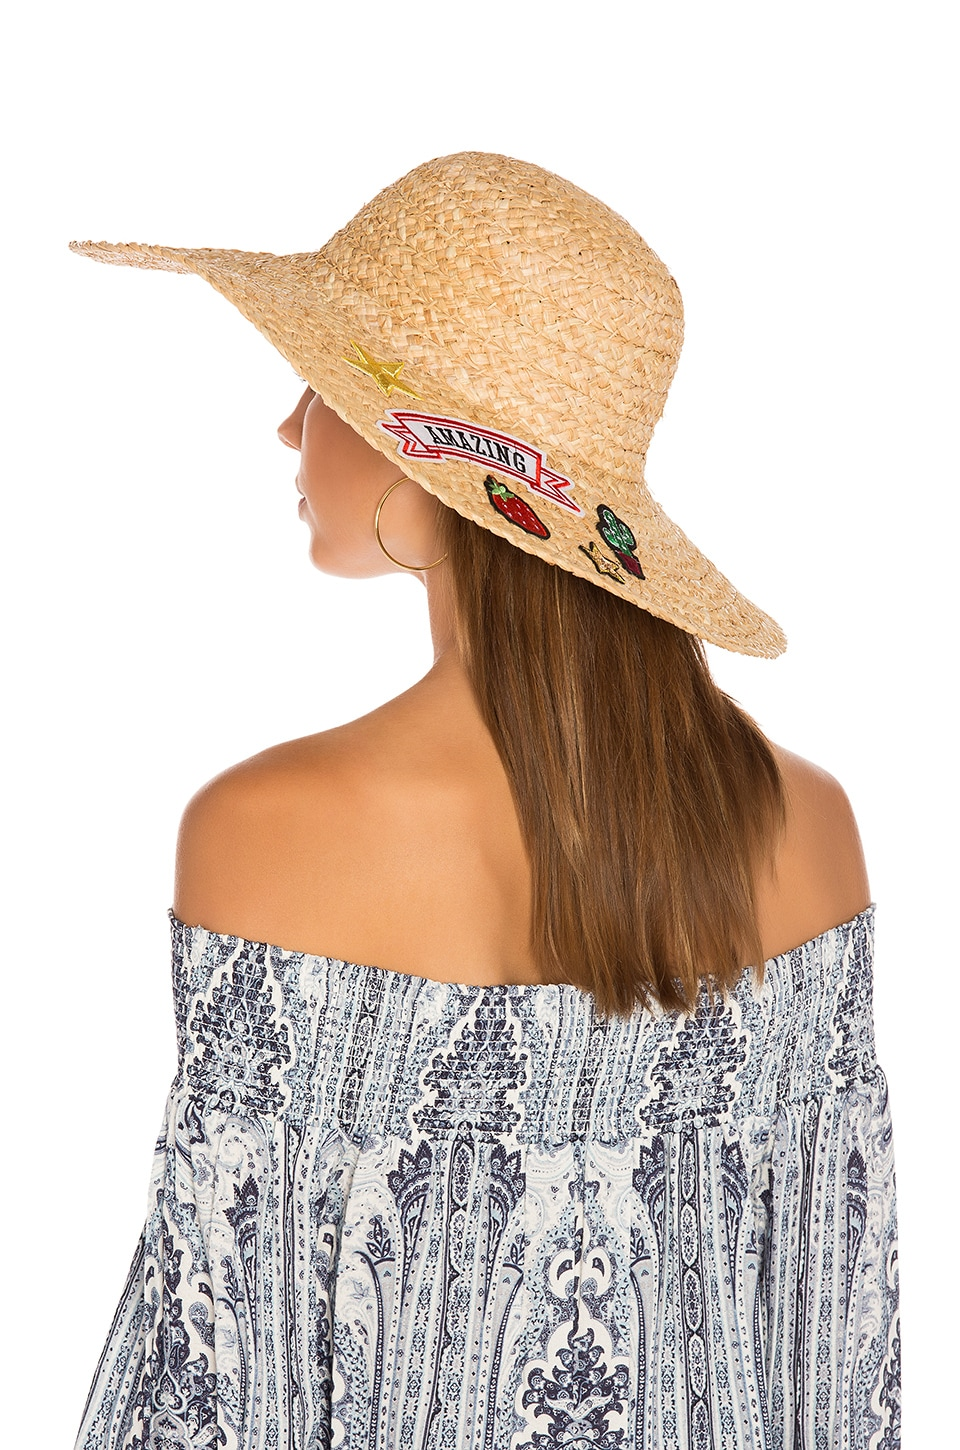 Patch Sunhat by Hat Attack